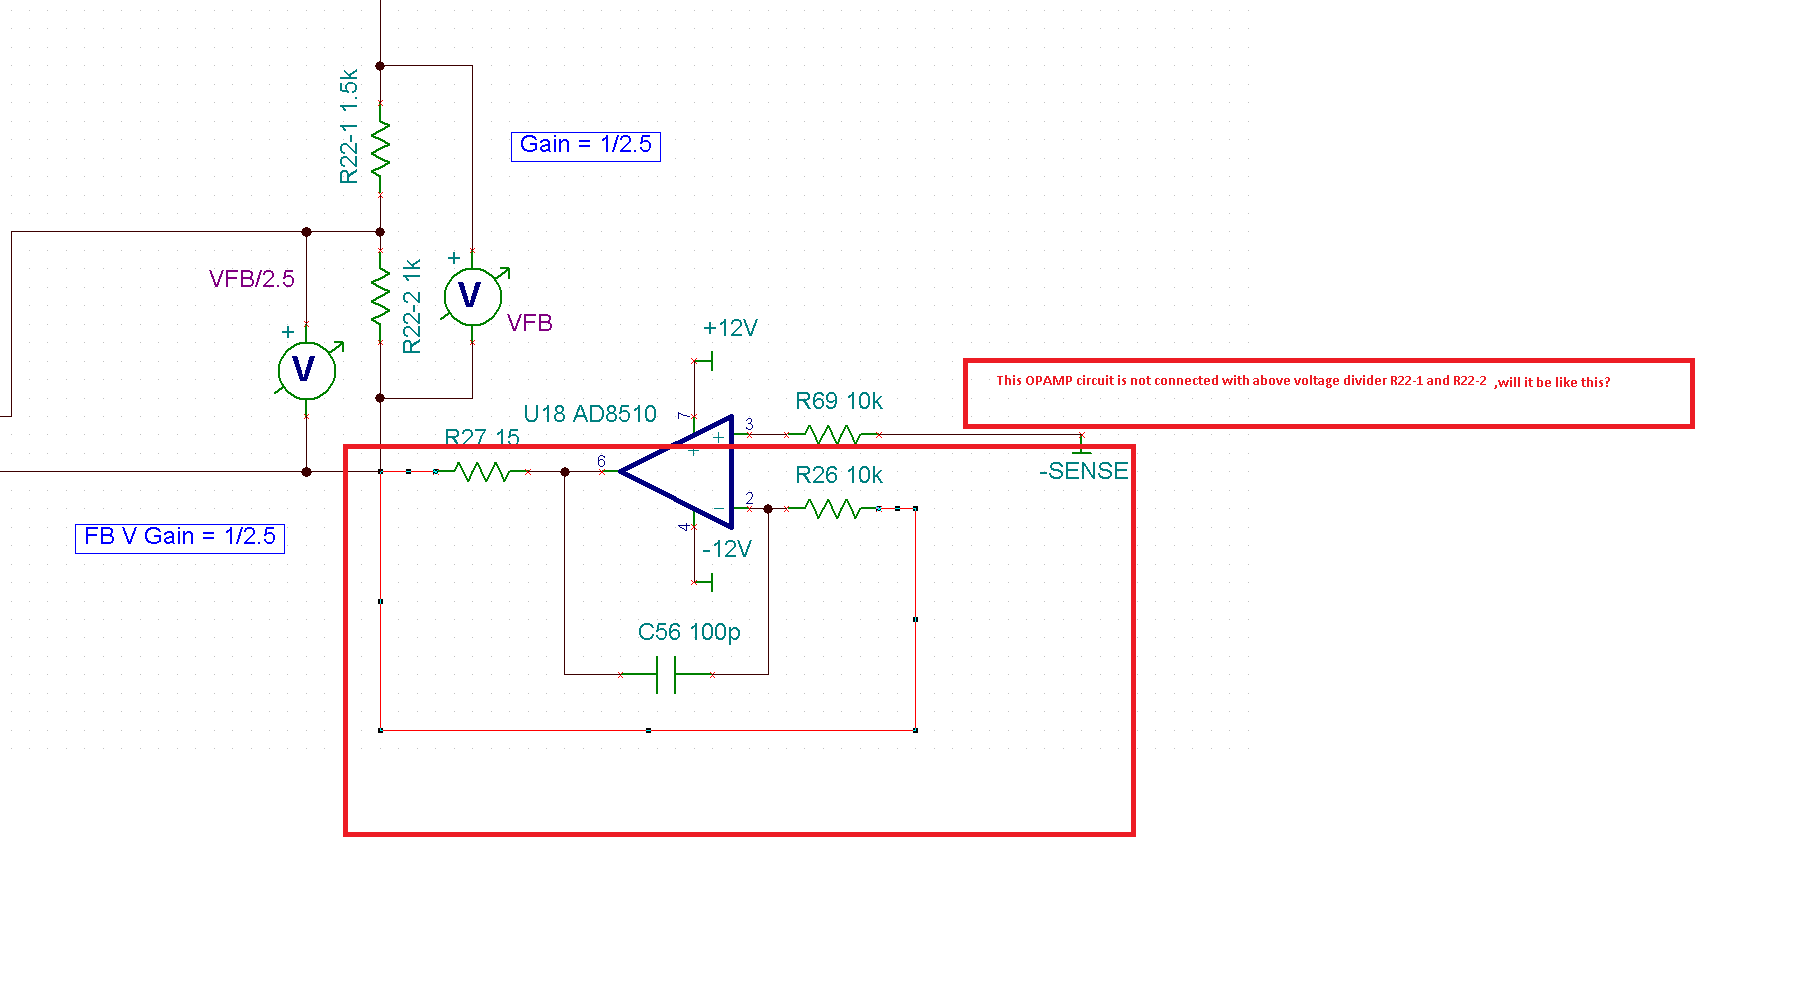 Resolved Tina Spice Problem With Voltage Divider Error And Potential Circuit 1 Opamp Ckt Is Not Connected N W You Mentioned Please Confirm On This